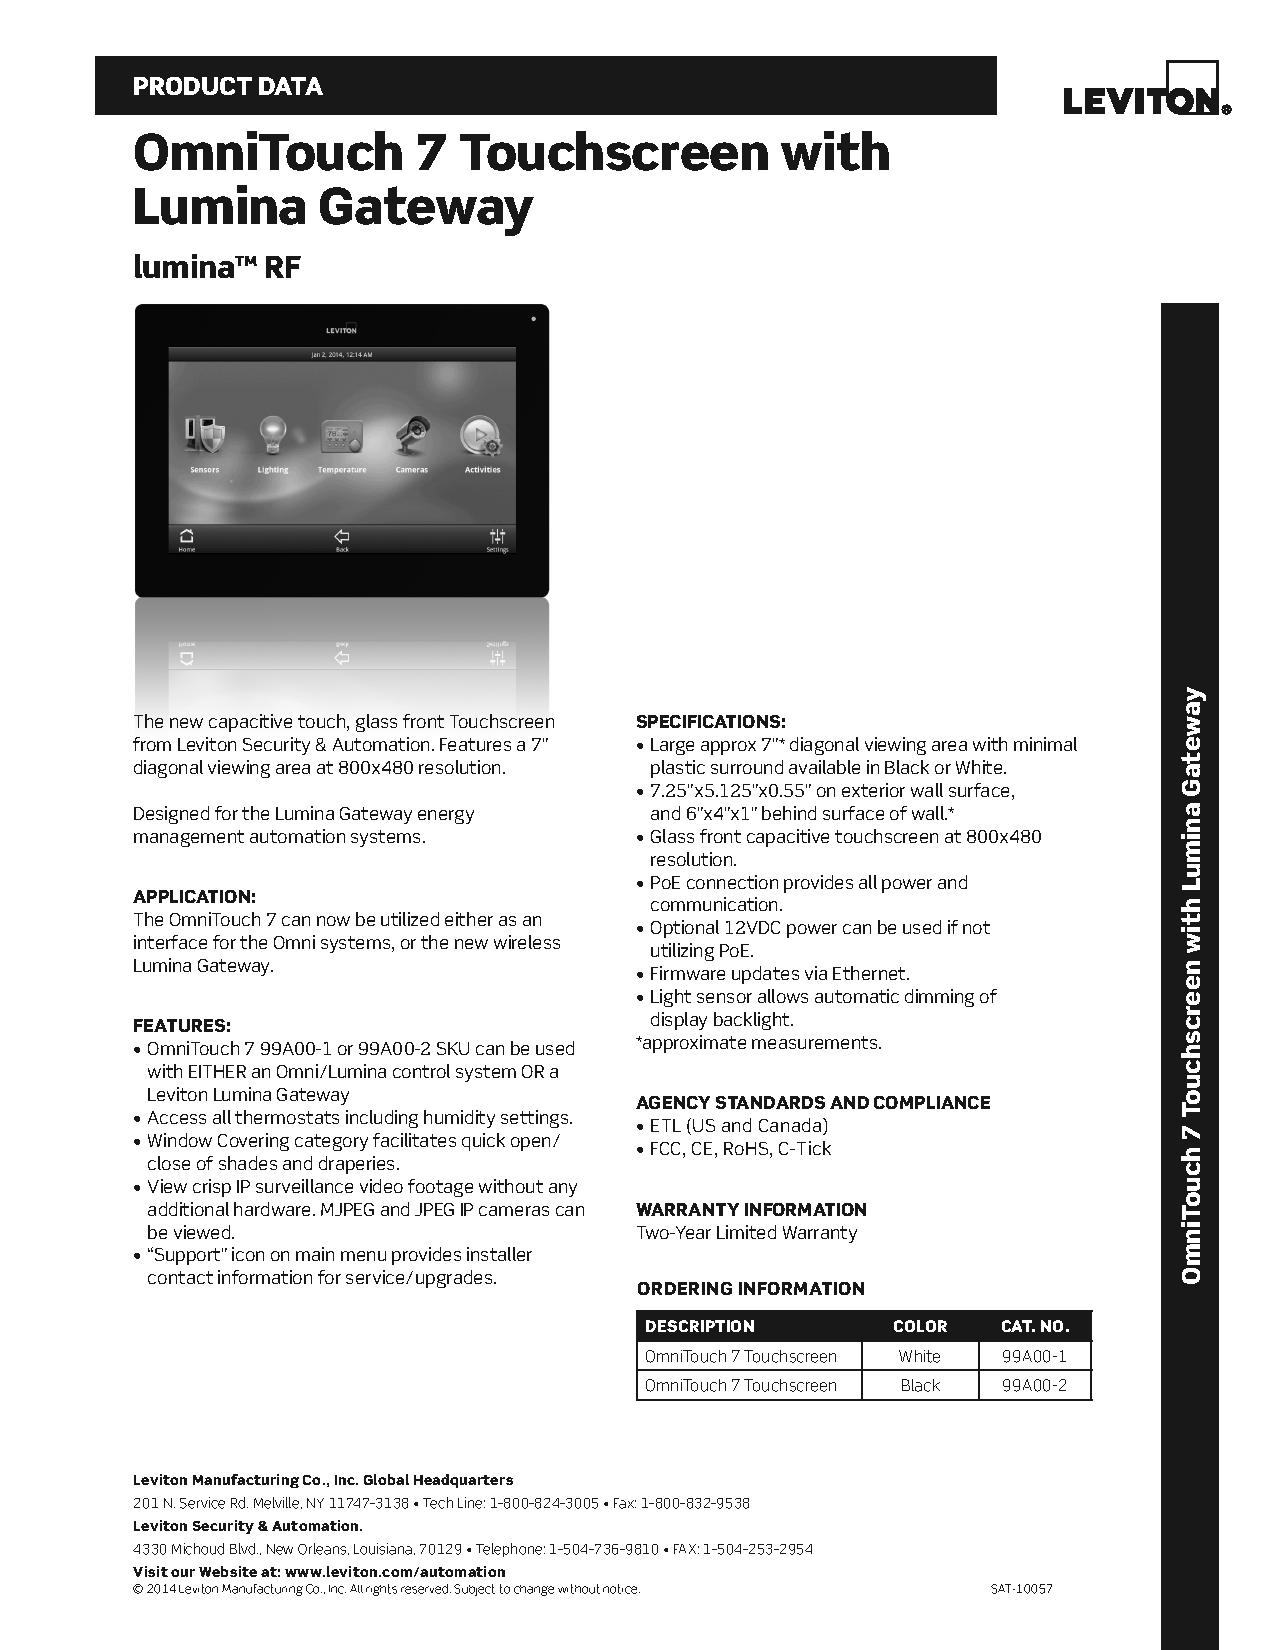 Leviton OmniTouch 7 Touchscreen for use with Lumina Gateway | AJB Sales